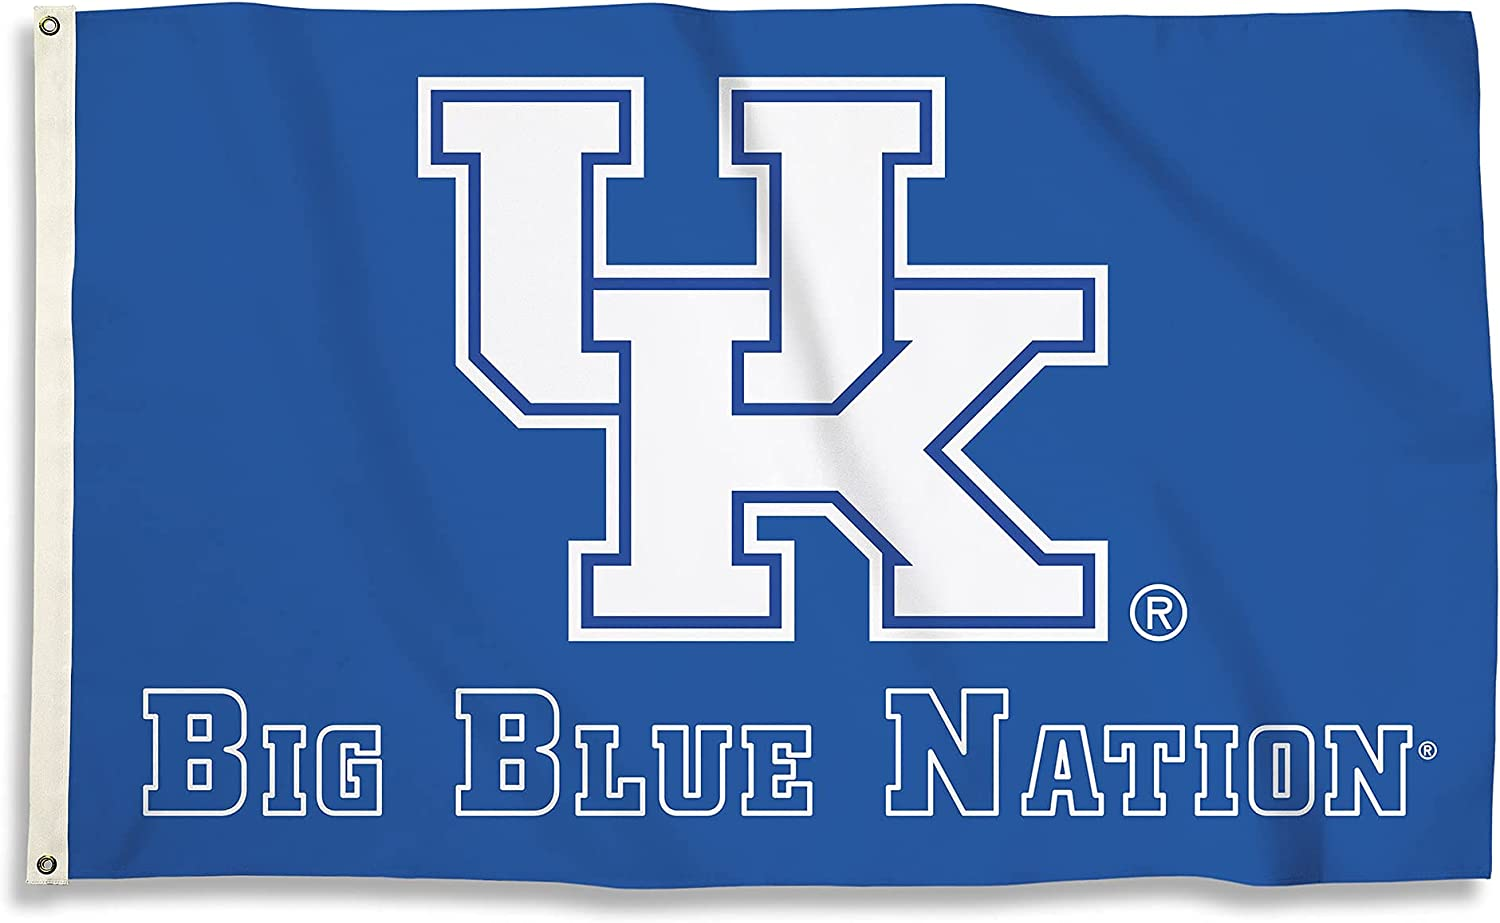 BSI PRODUCTS, INC. - Kentucky Wildcats 3'x5' Flag with Heavy-Duty Brass Grommets - UK Football, Basketball & Baseball Pride - High Durability - Designed for Indoor or Outdoor Use - Great Gift Idea